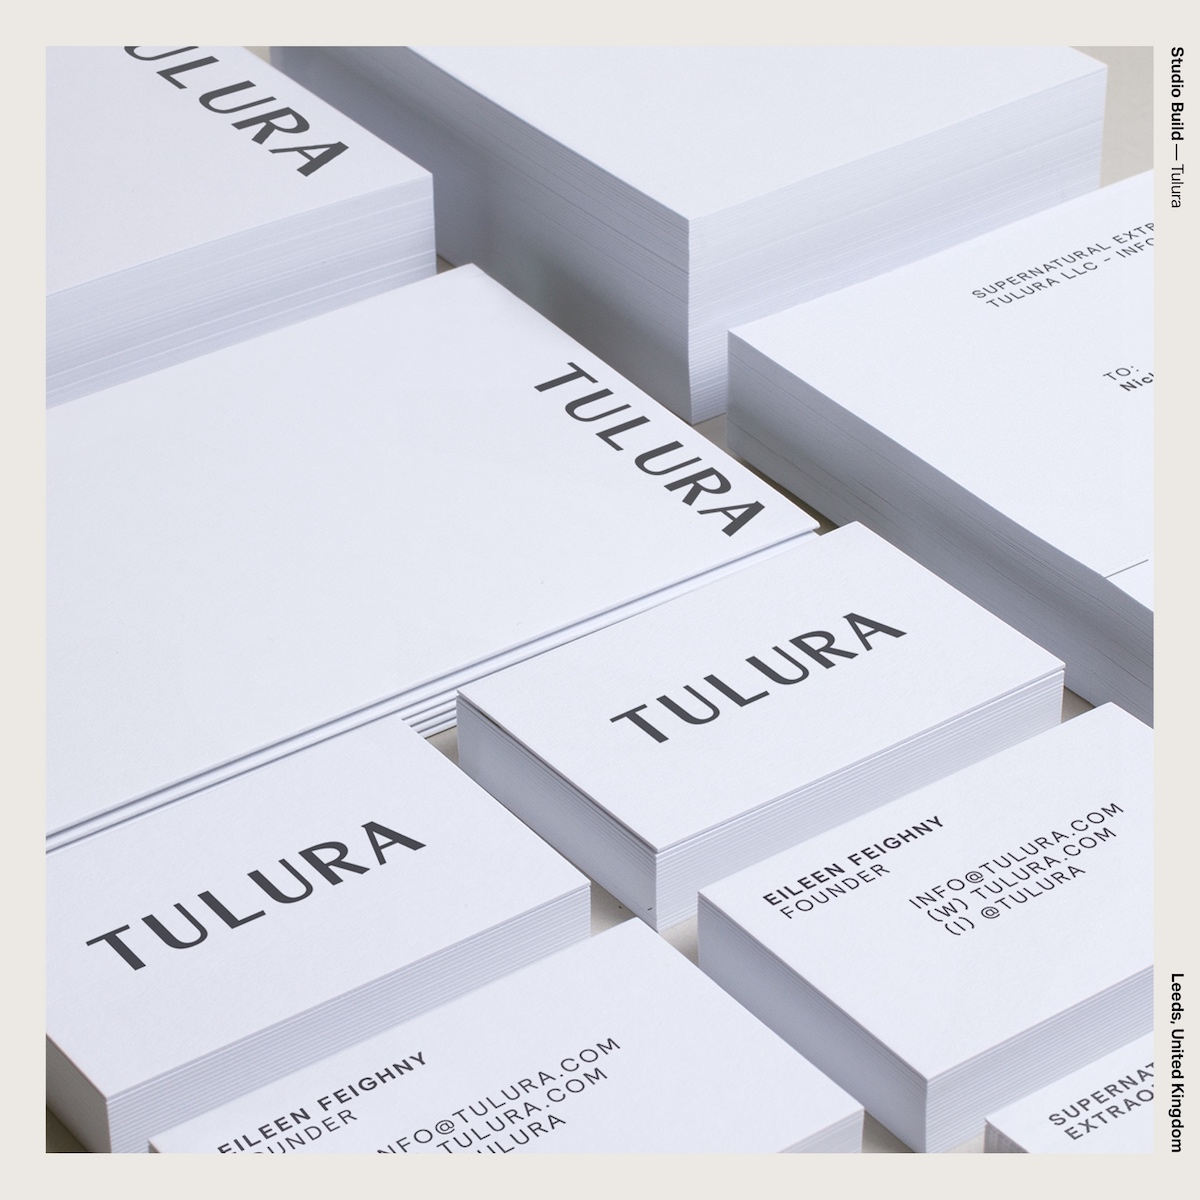 Studio Build — Tulura